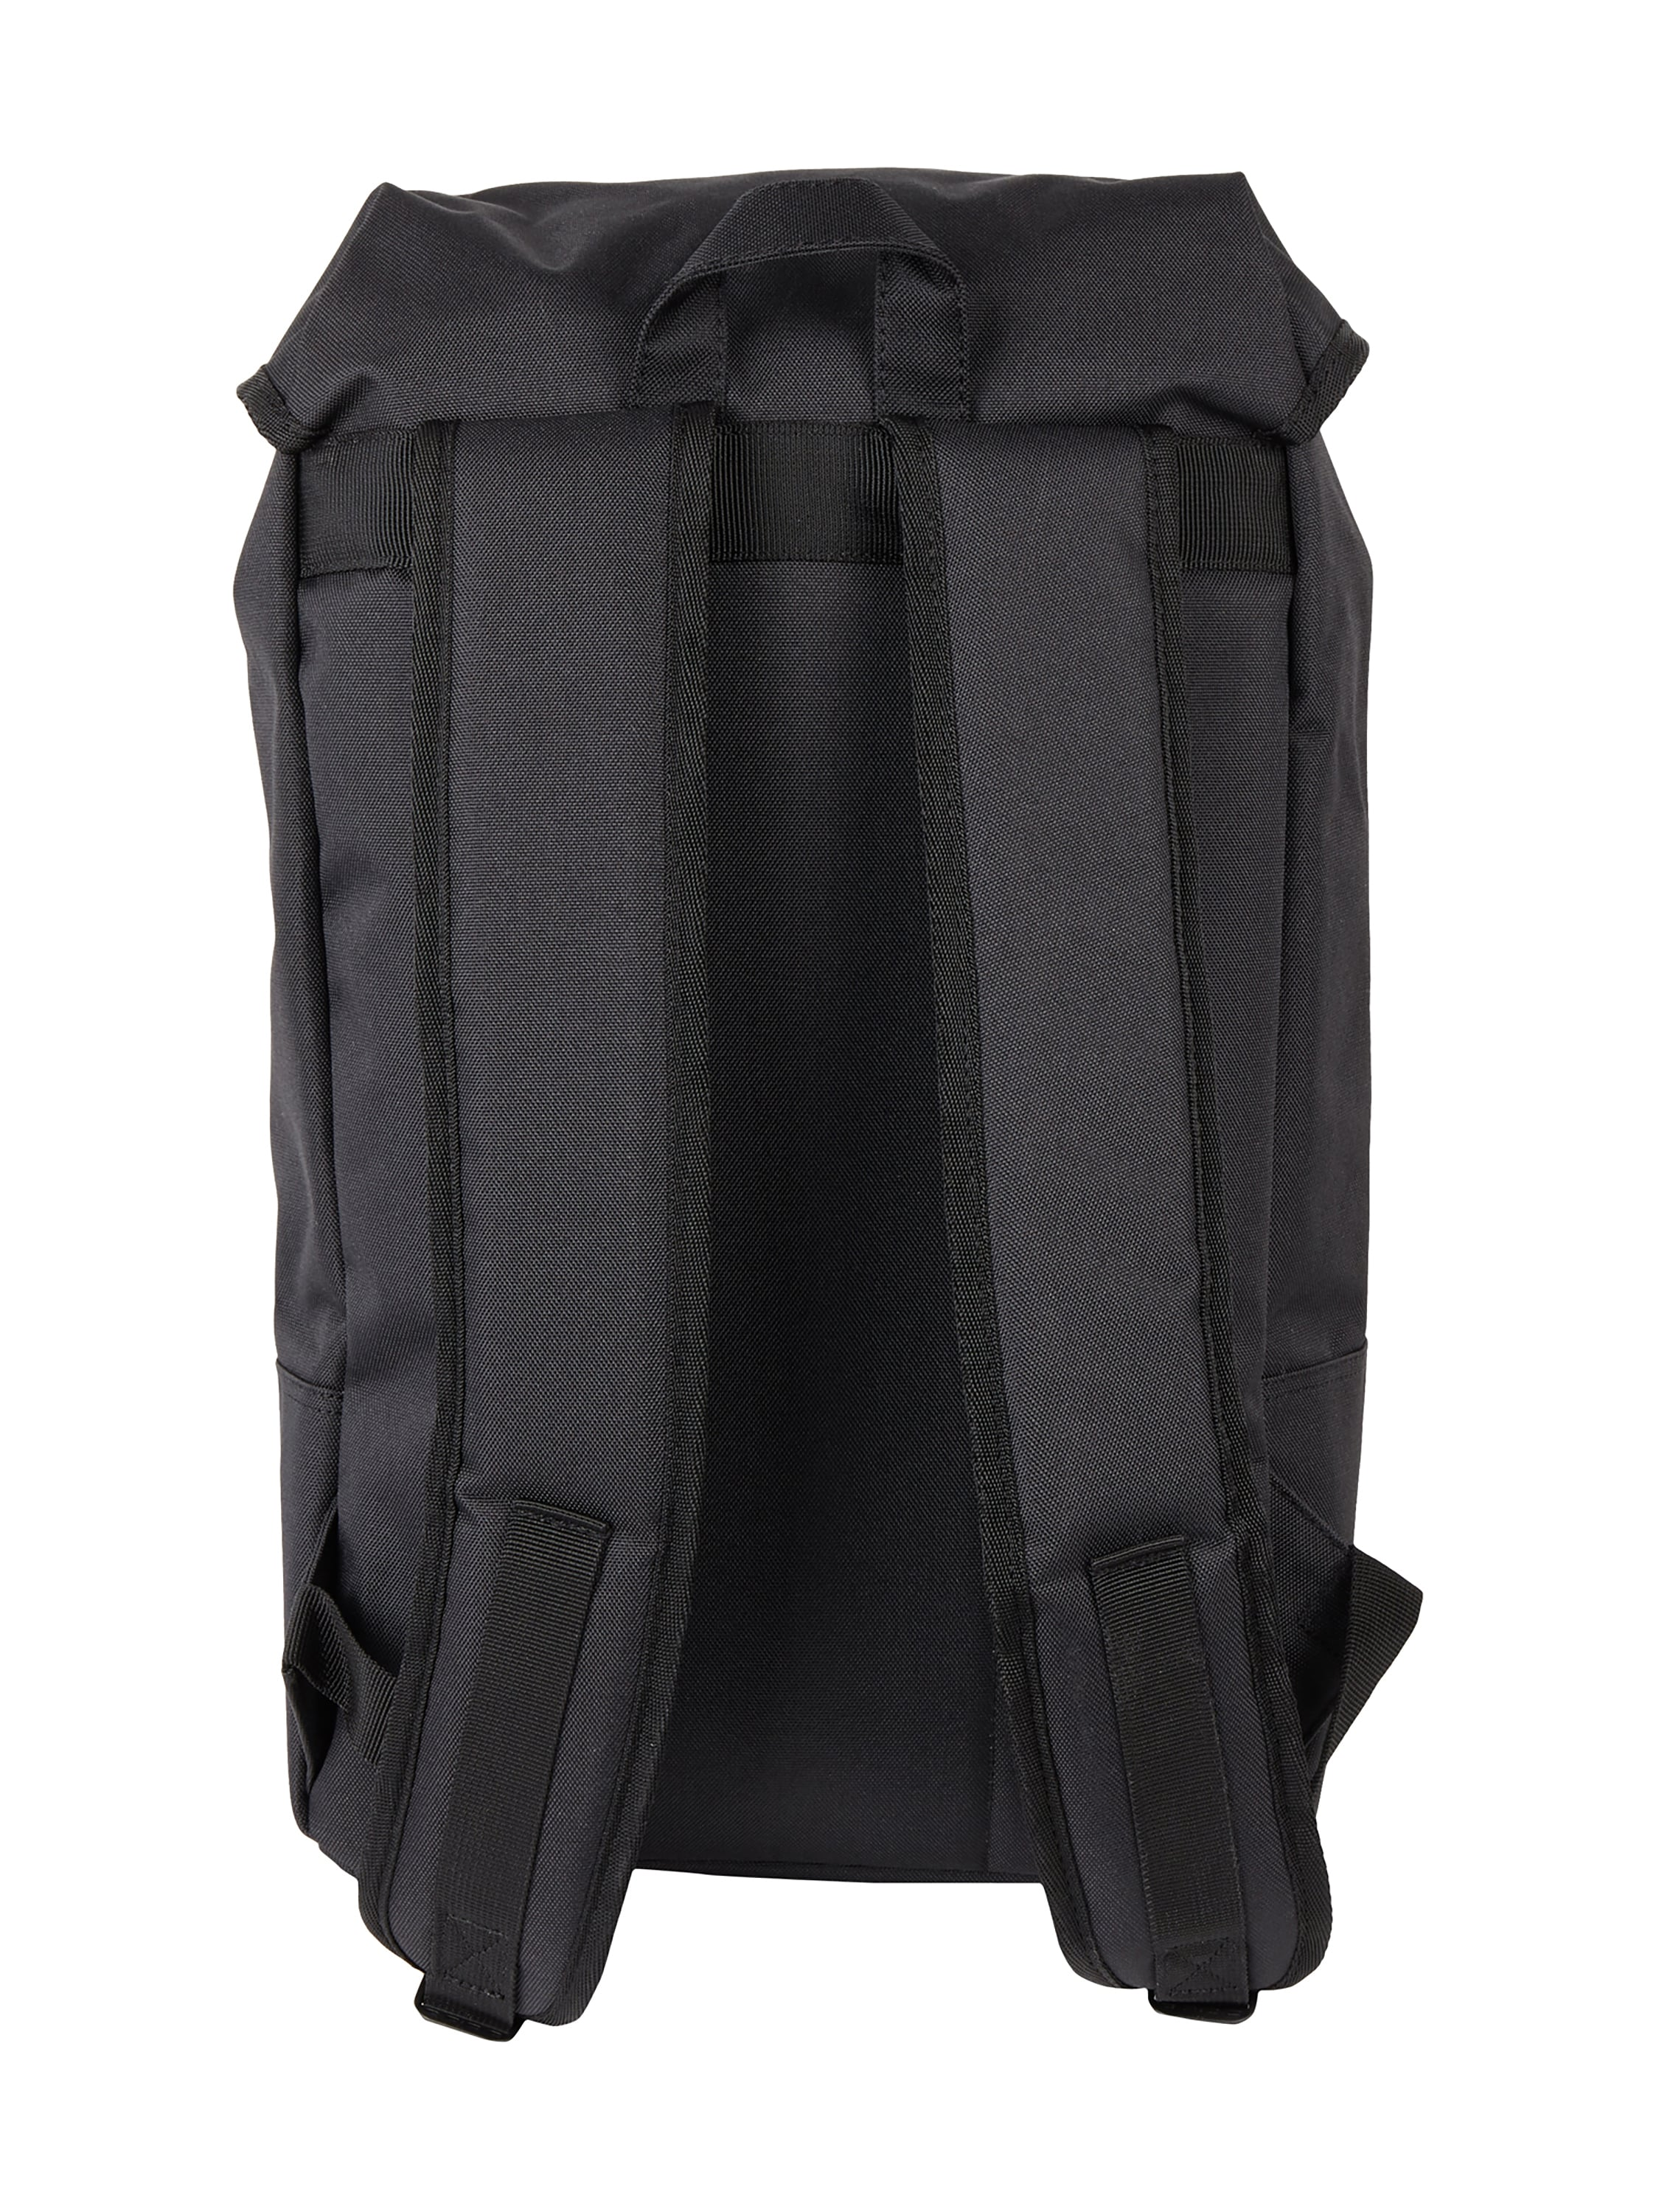 rucksack mit zugverschluss fashion id online shop. Black Bedroom Furniture Sets. Home Design Ideas